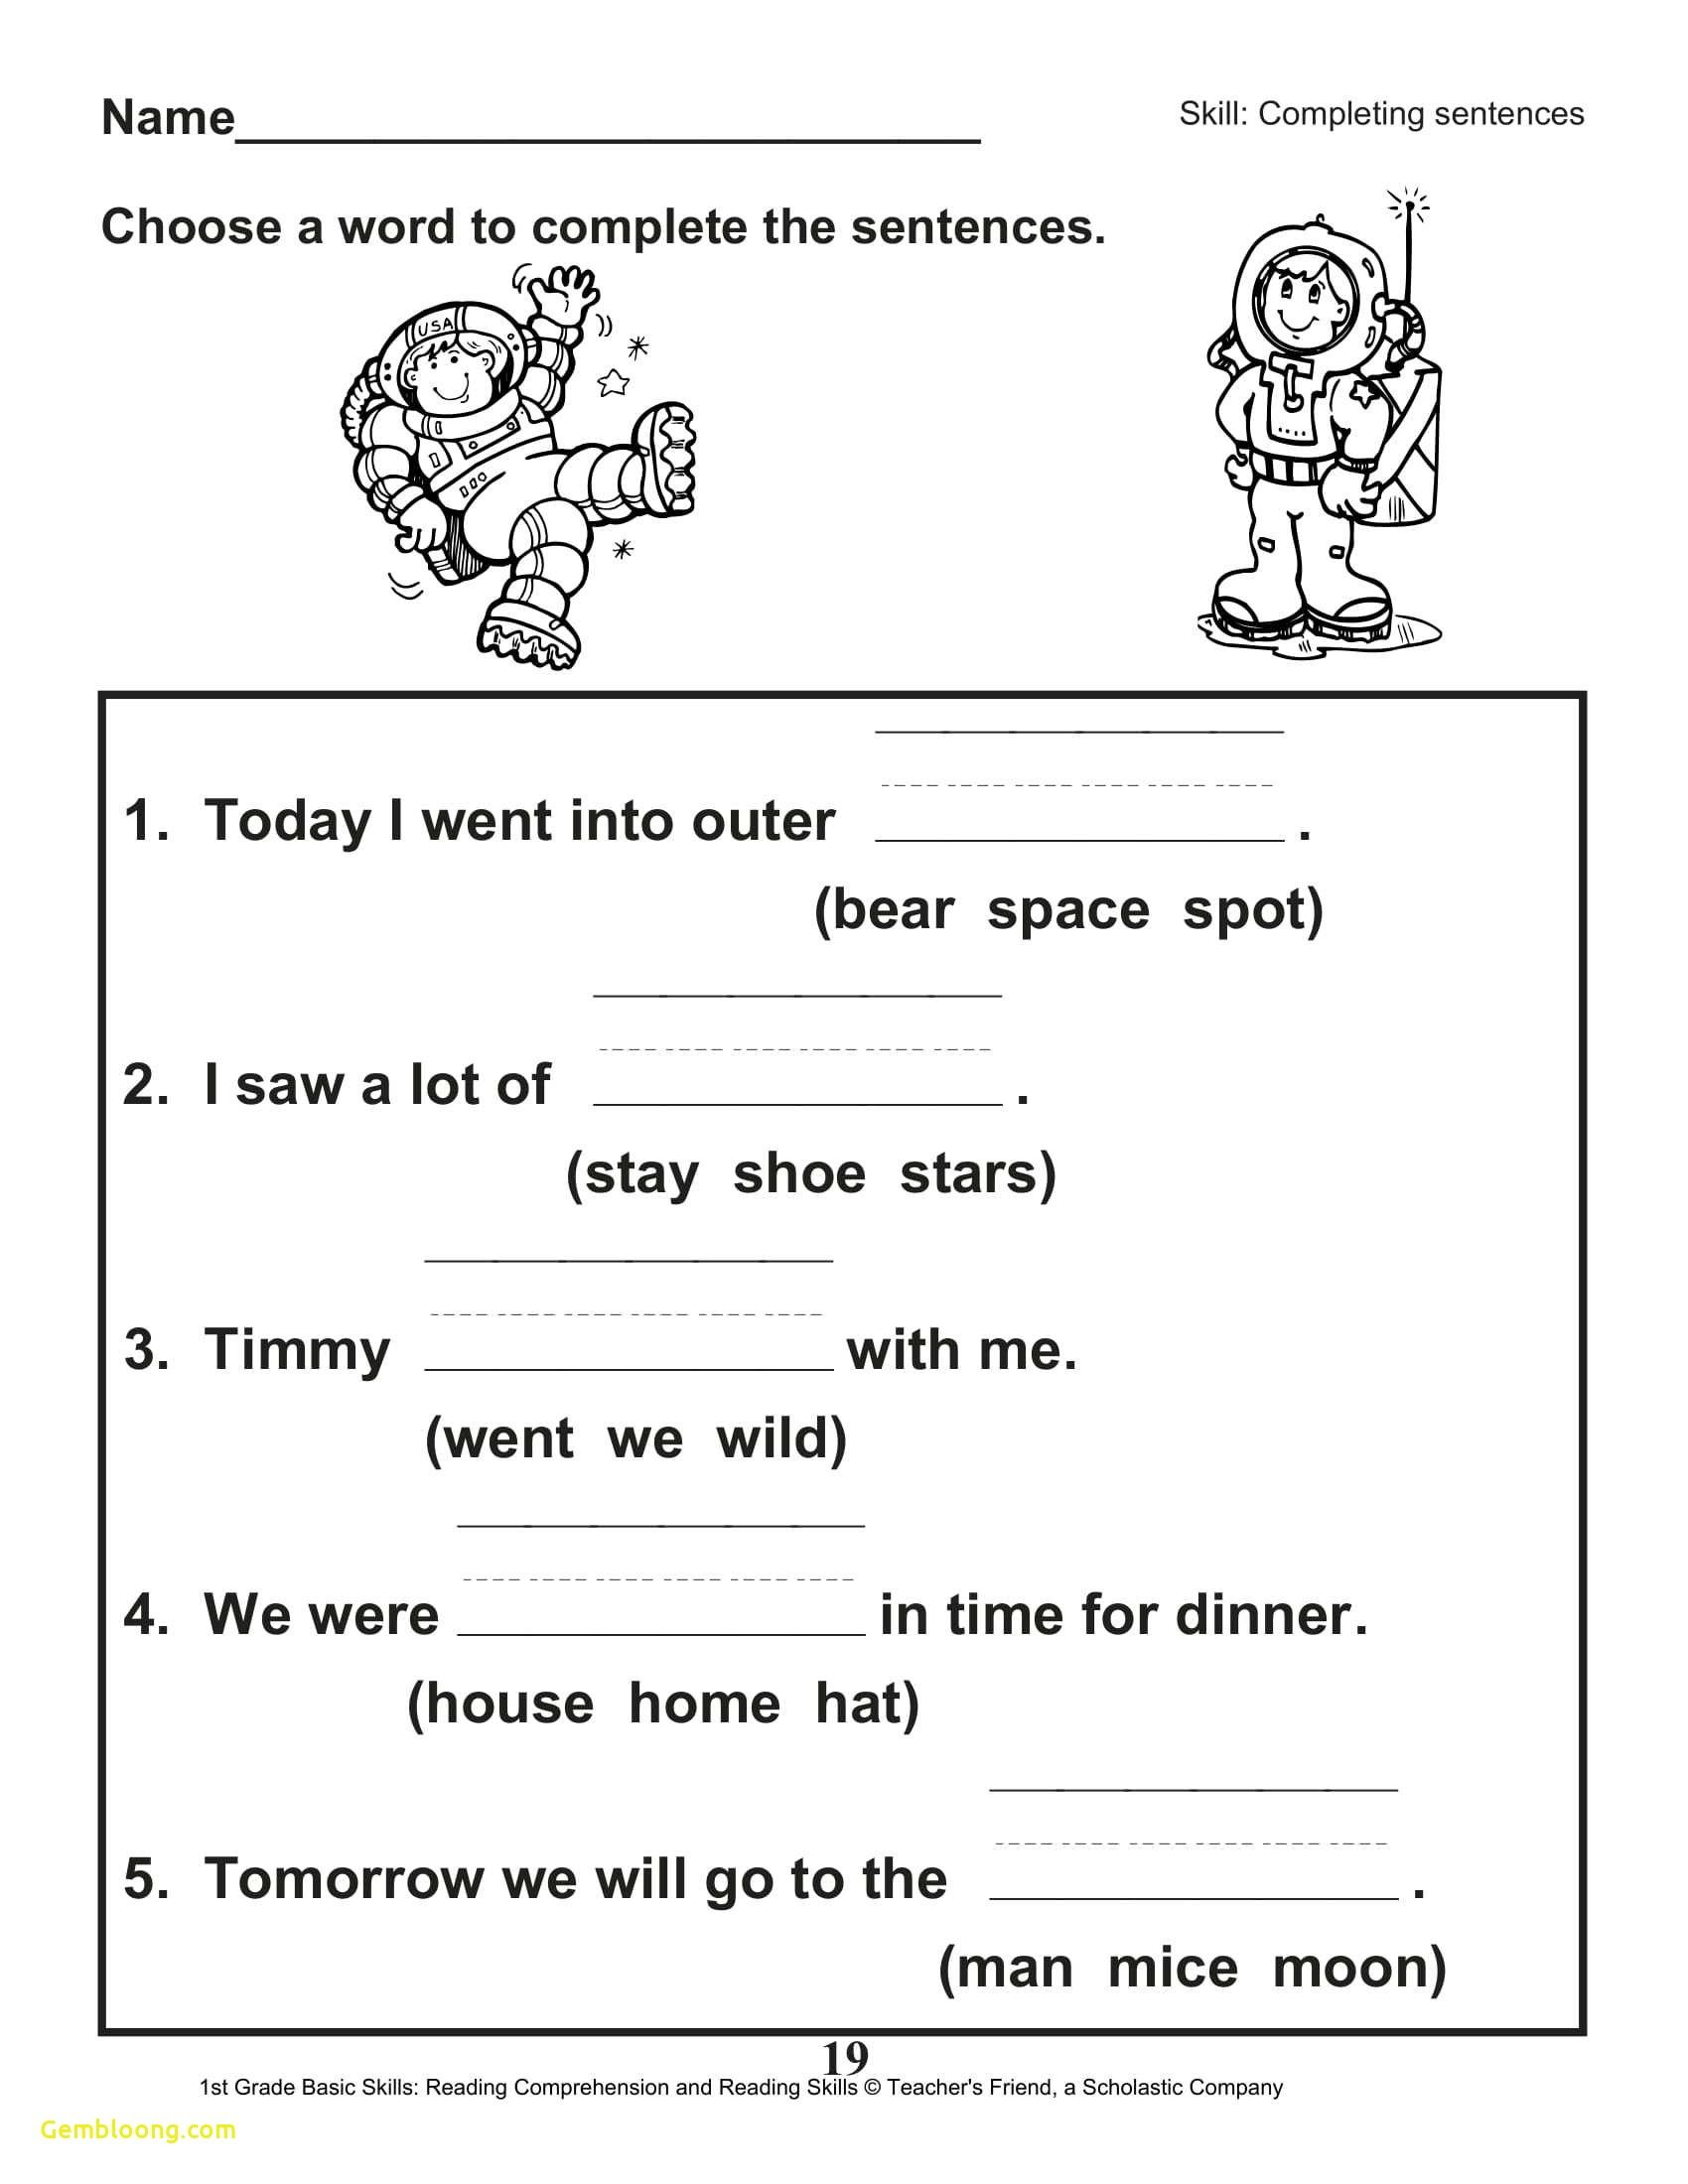 Official Addition And Subtraction Worksheets 1st Grade Worksheet Printable First Grade Worksheets Reading Worksheets Kindergarten Reading Worksheets [ 2200 x 1700 Pixel ]